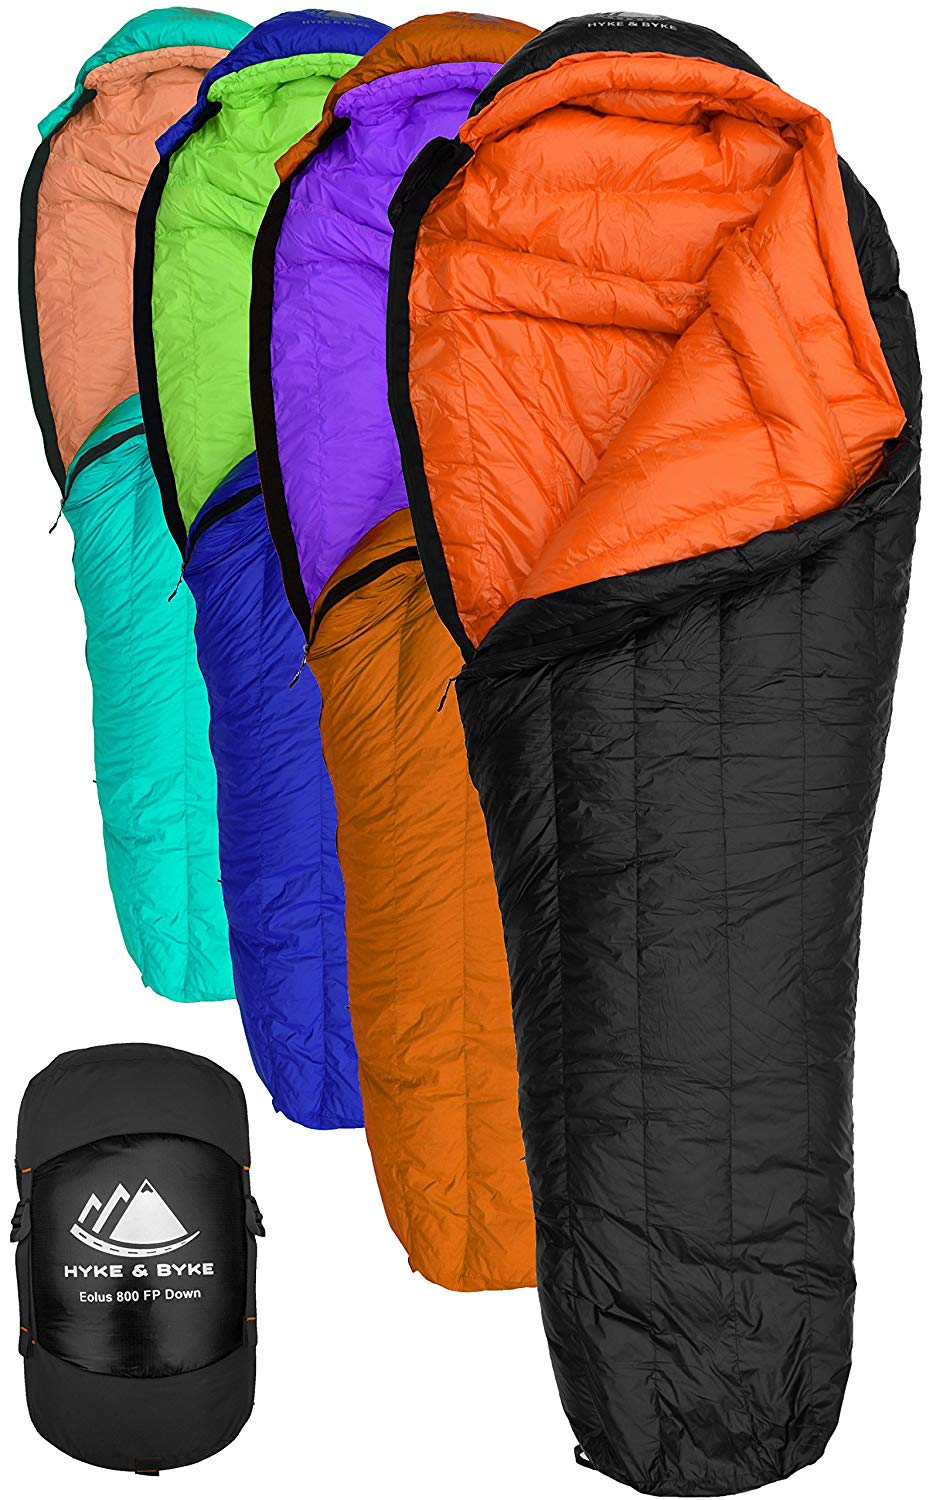 An image of Hyke & Byke Men's Nylon Ripstop Sleeping Bag | Expert Camper